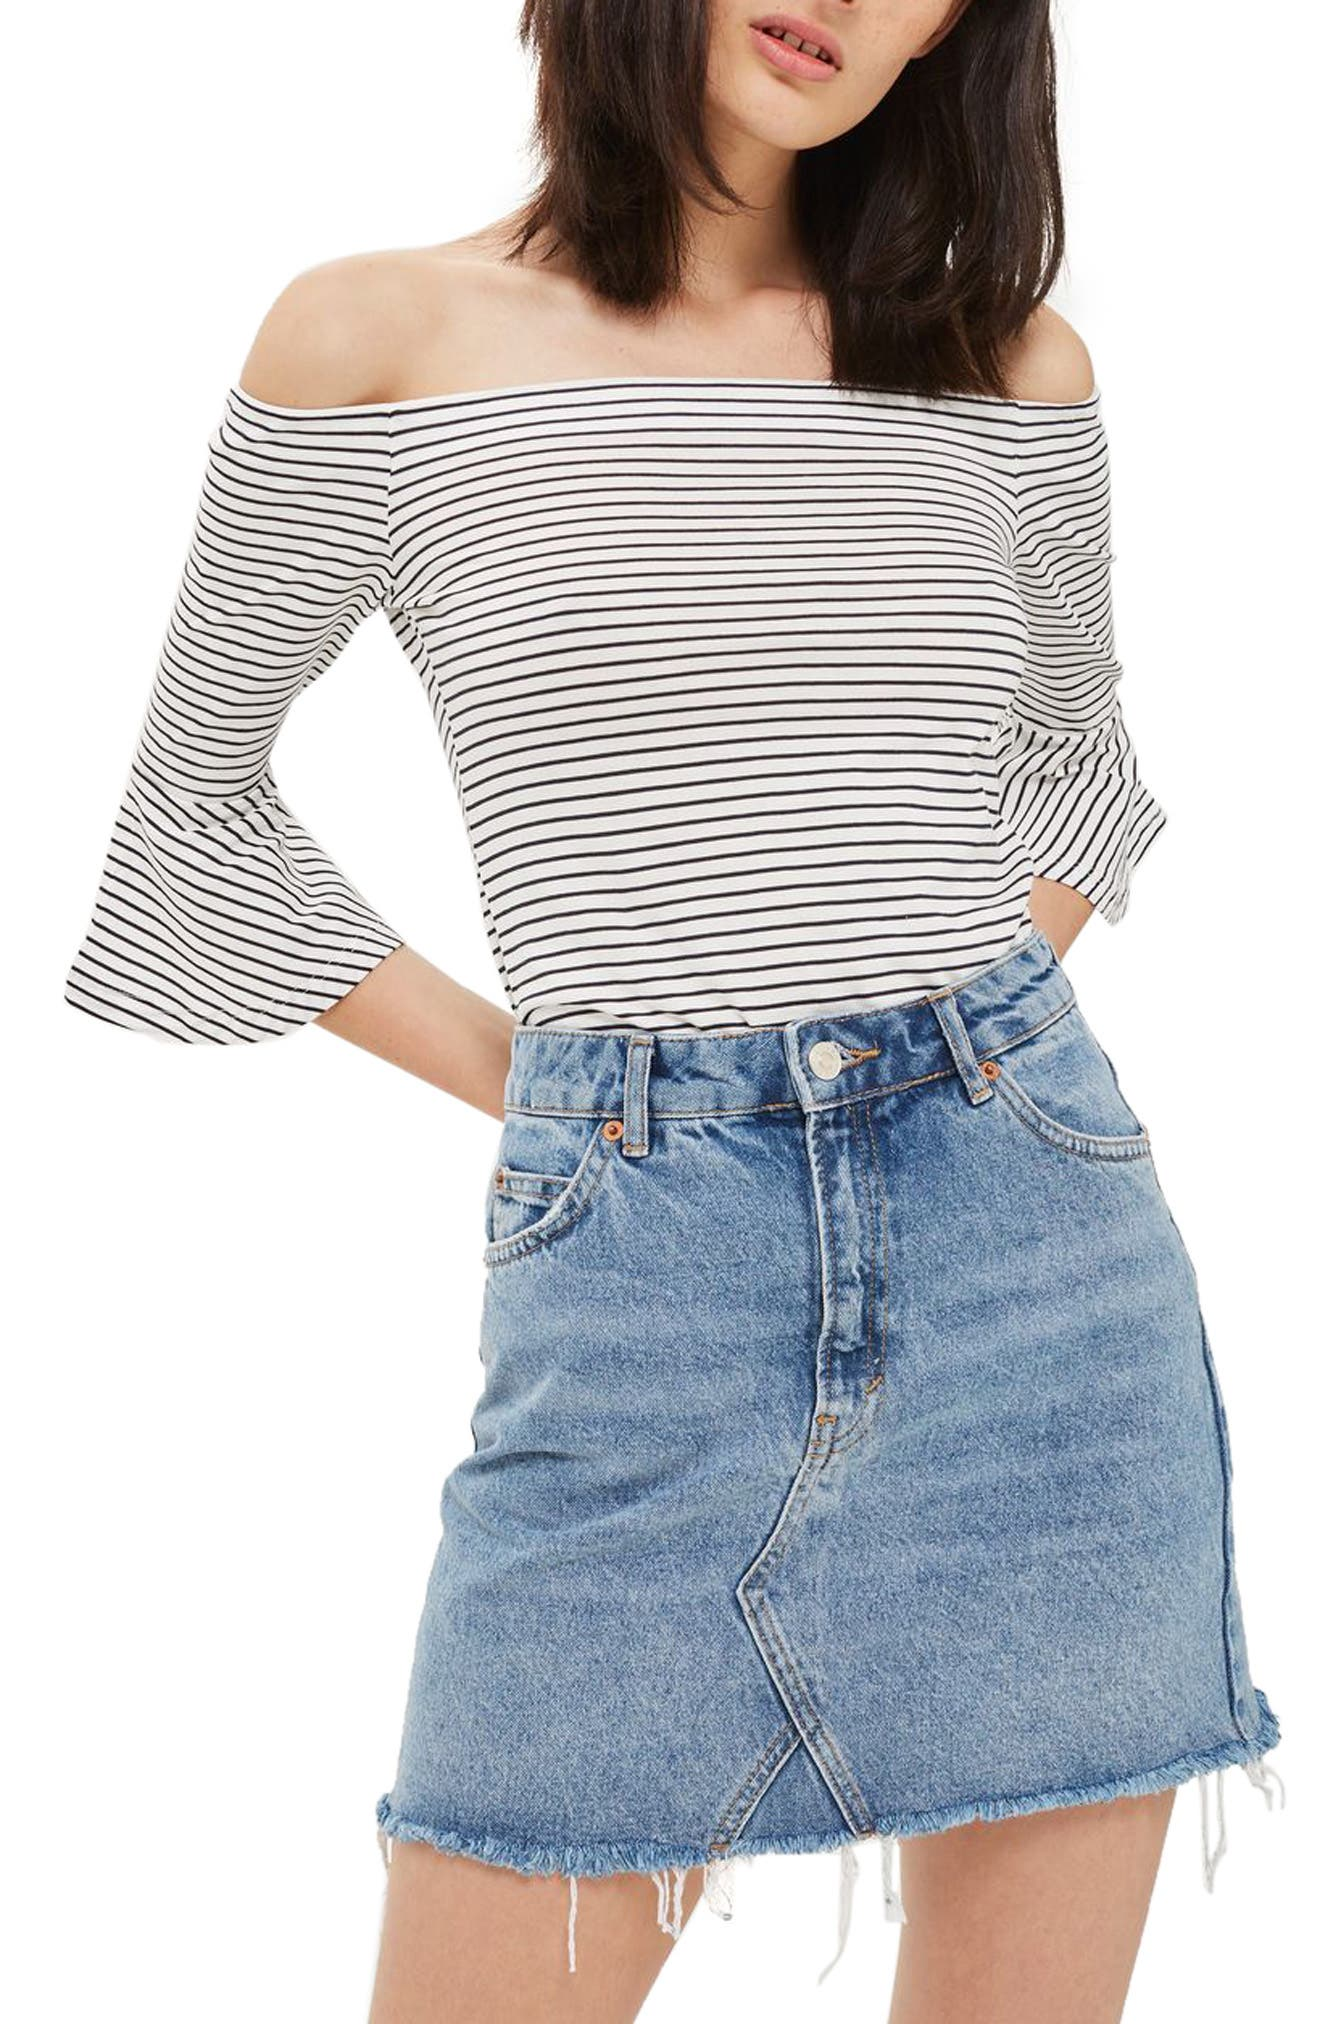 Topshop Stripe Off the Shoulder Bell Sleeve Top (Petite)